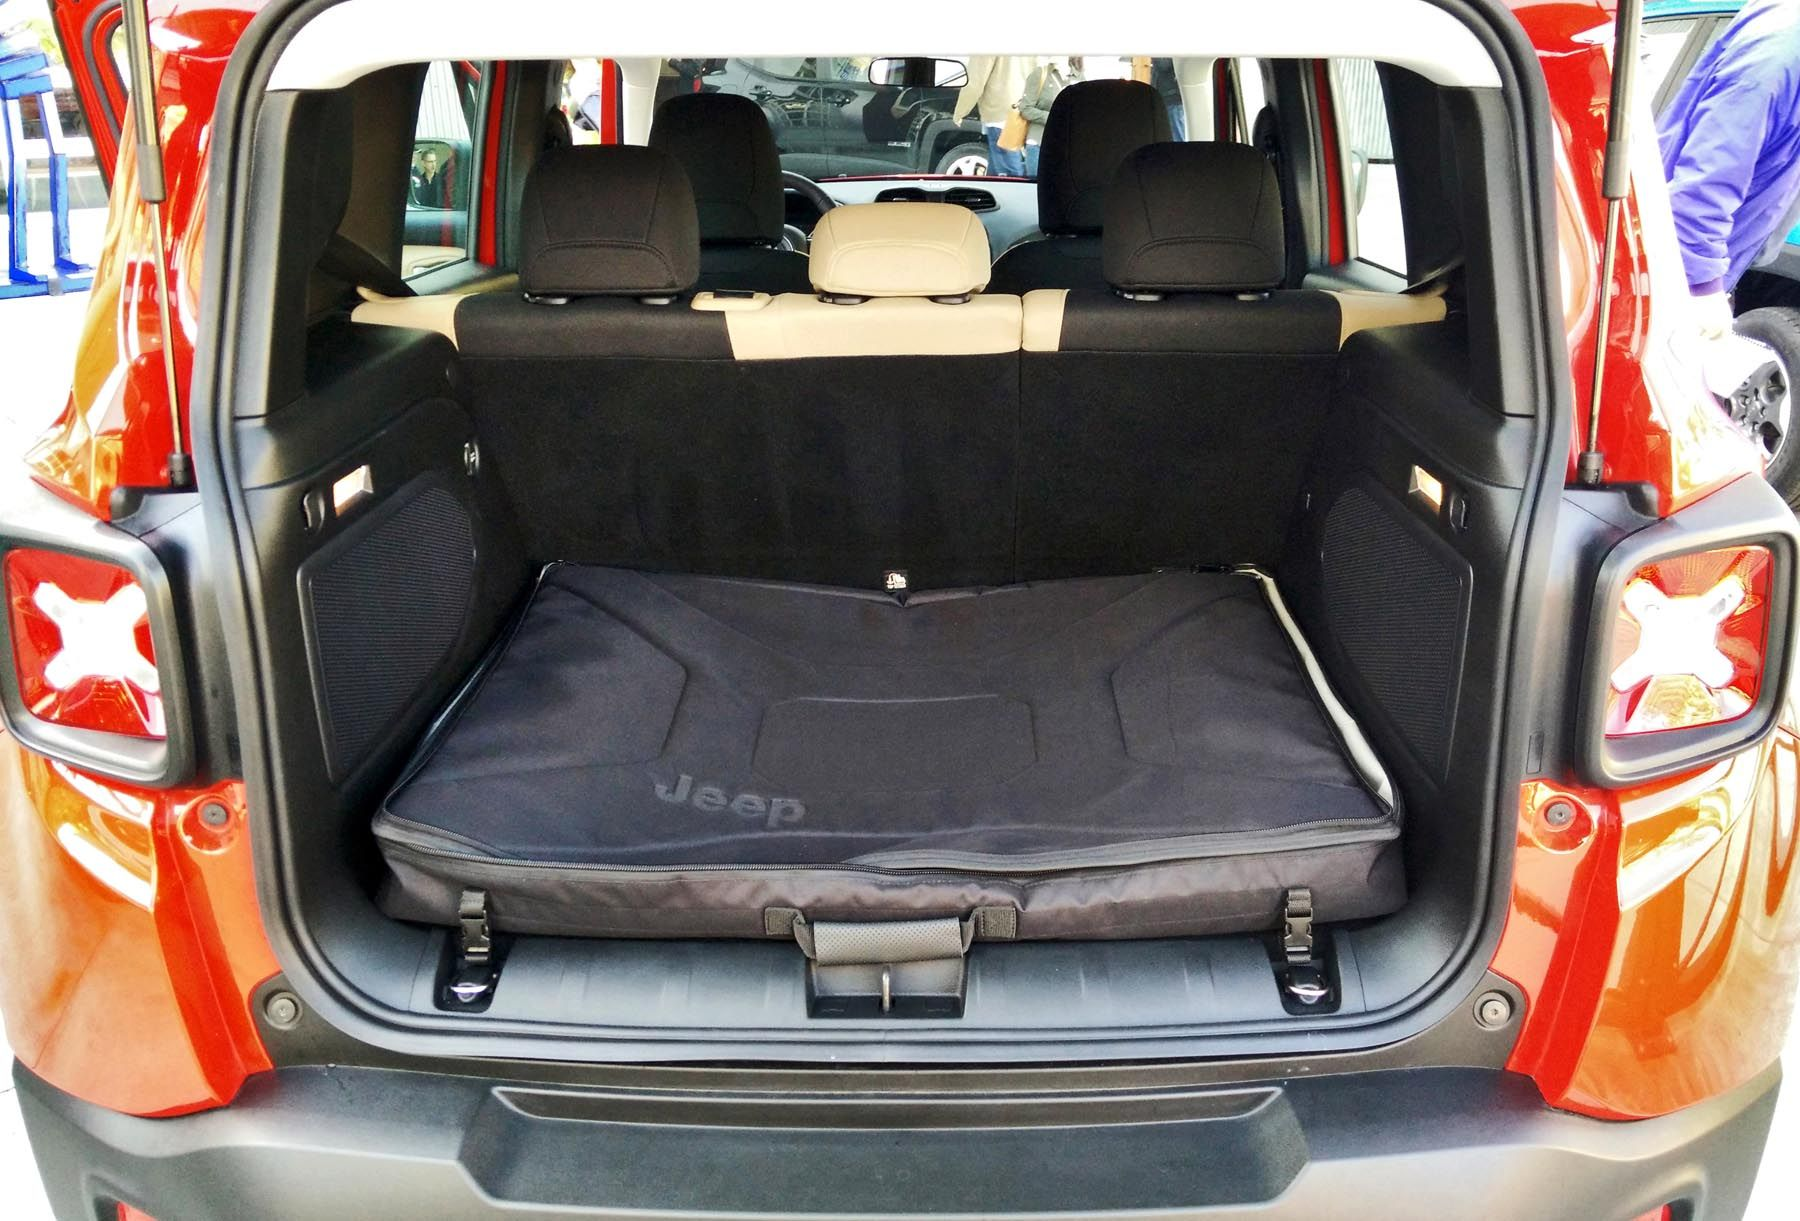 2016 Jeep Renegade Cargo Area Pics Yahoo Image Search Results